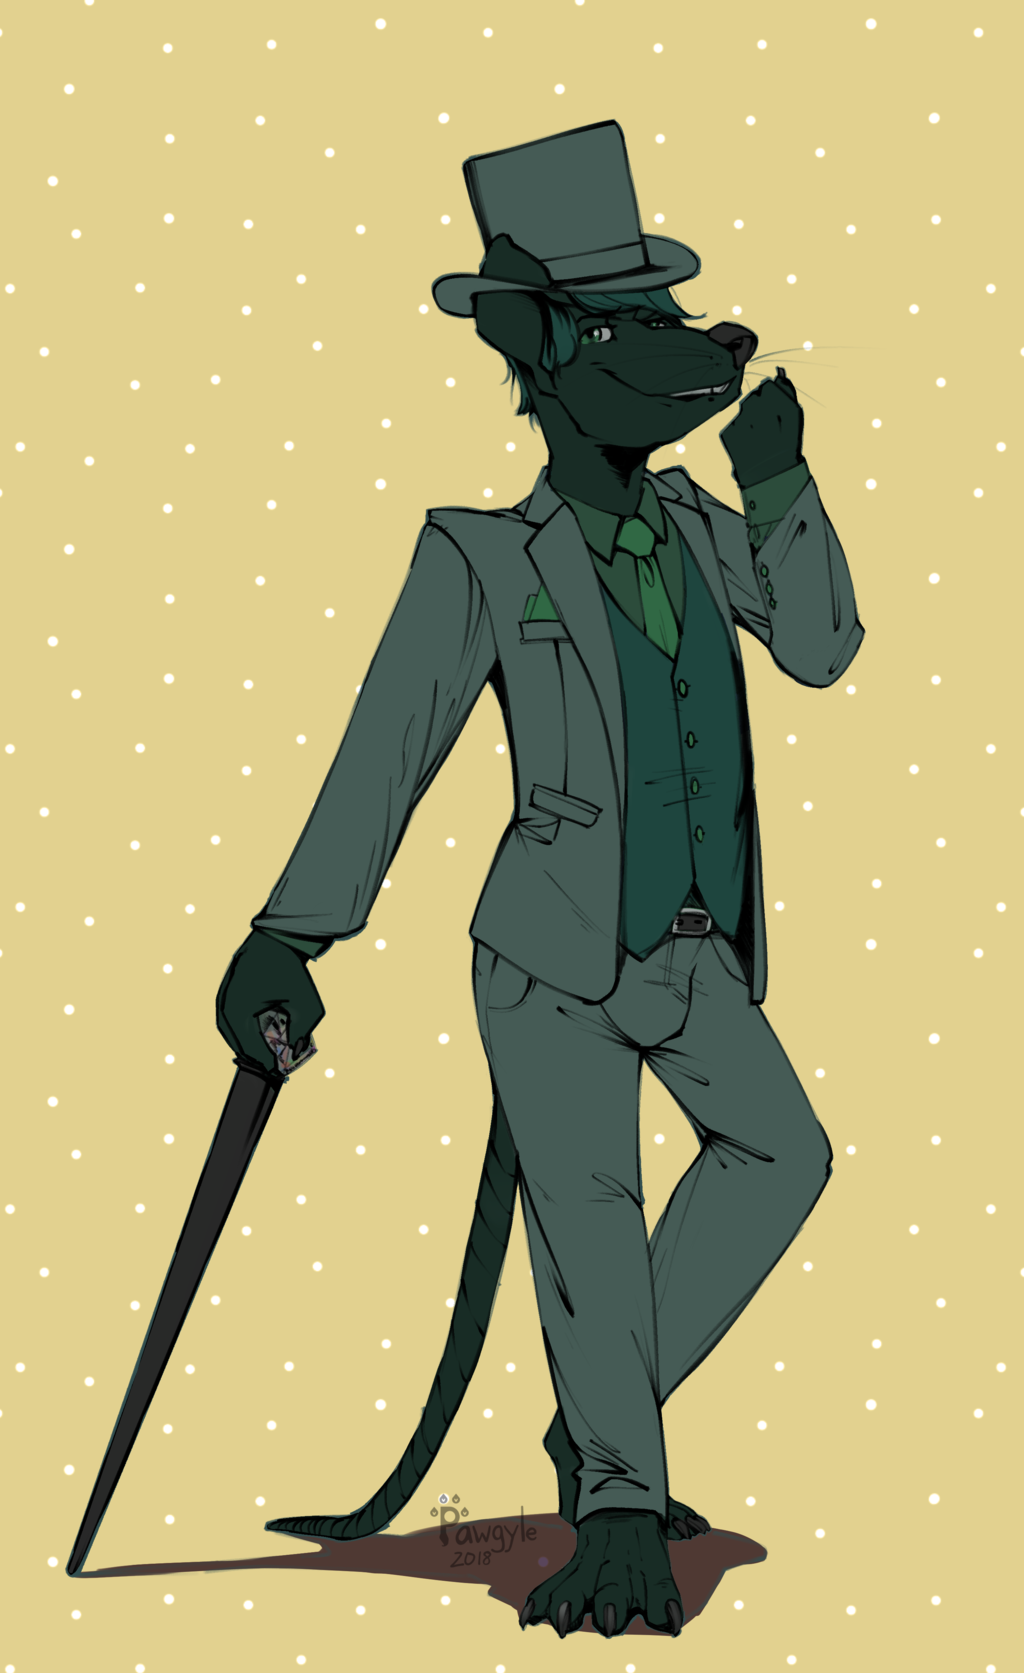 Farz in a three piece suit with cane